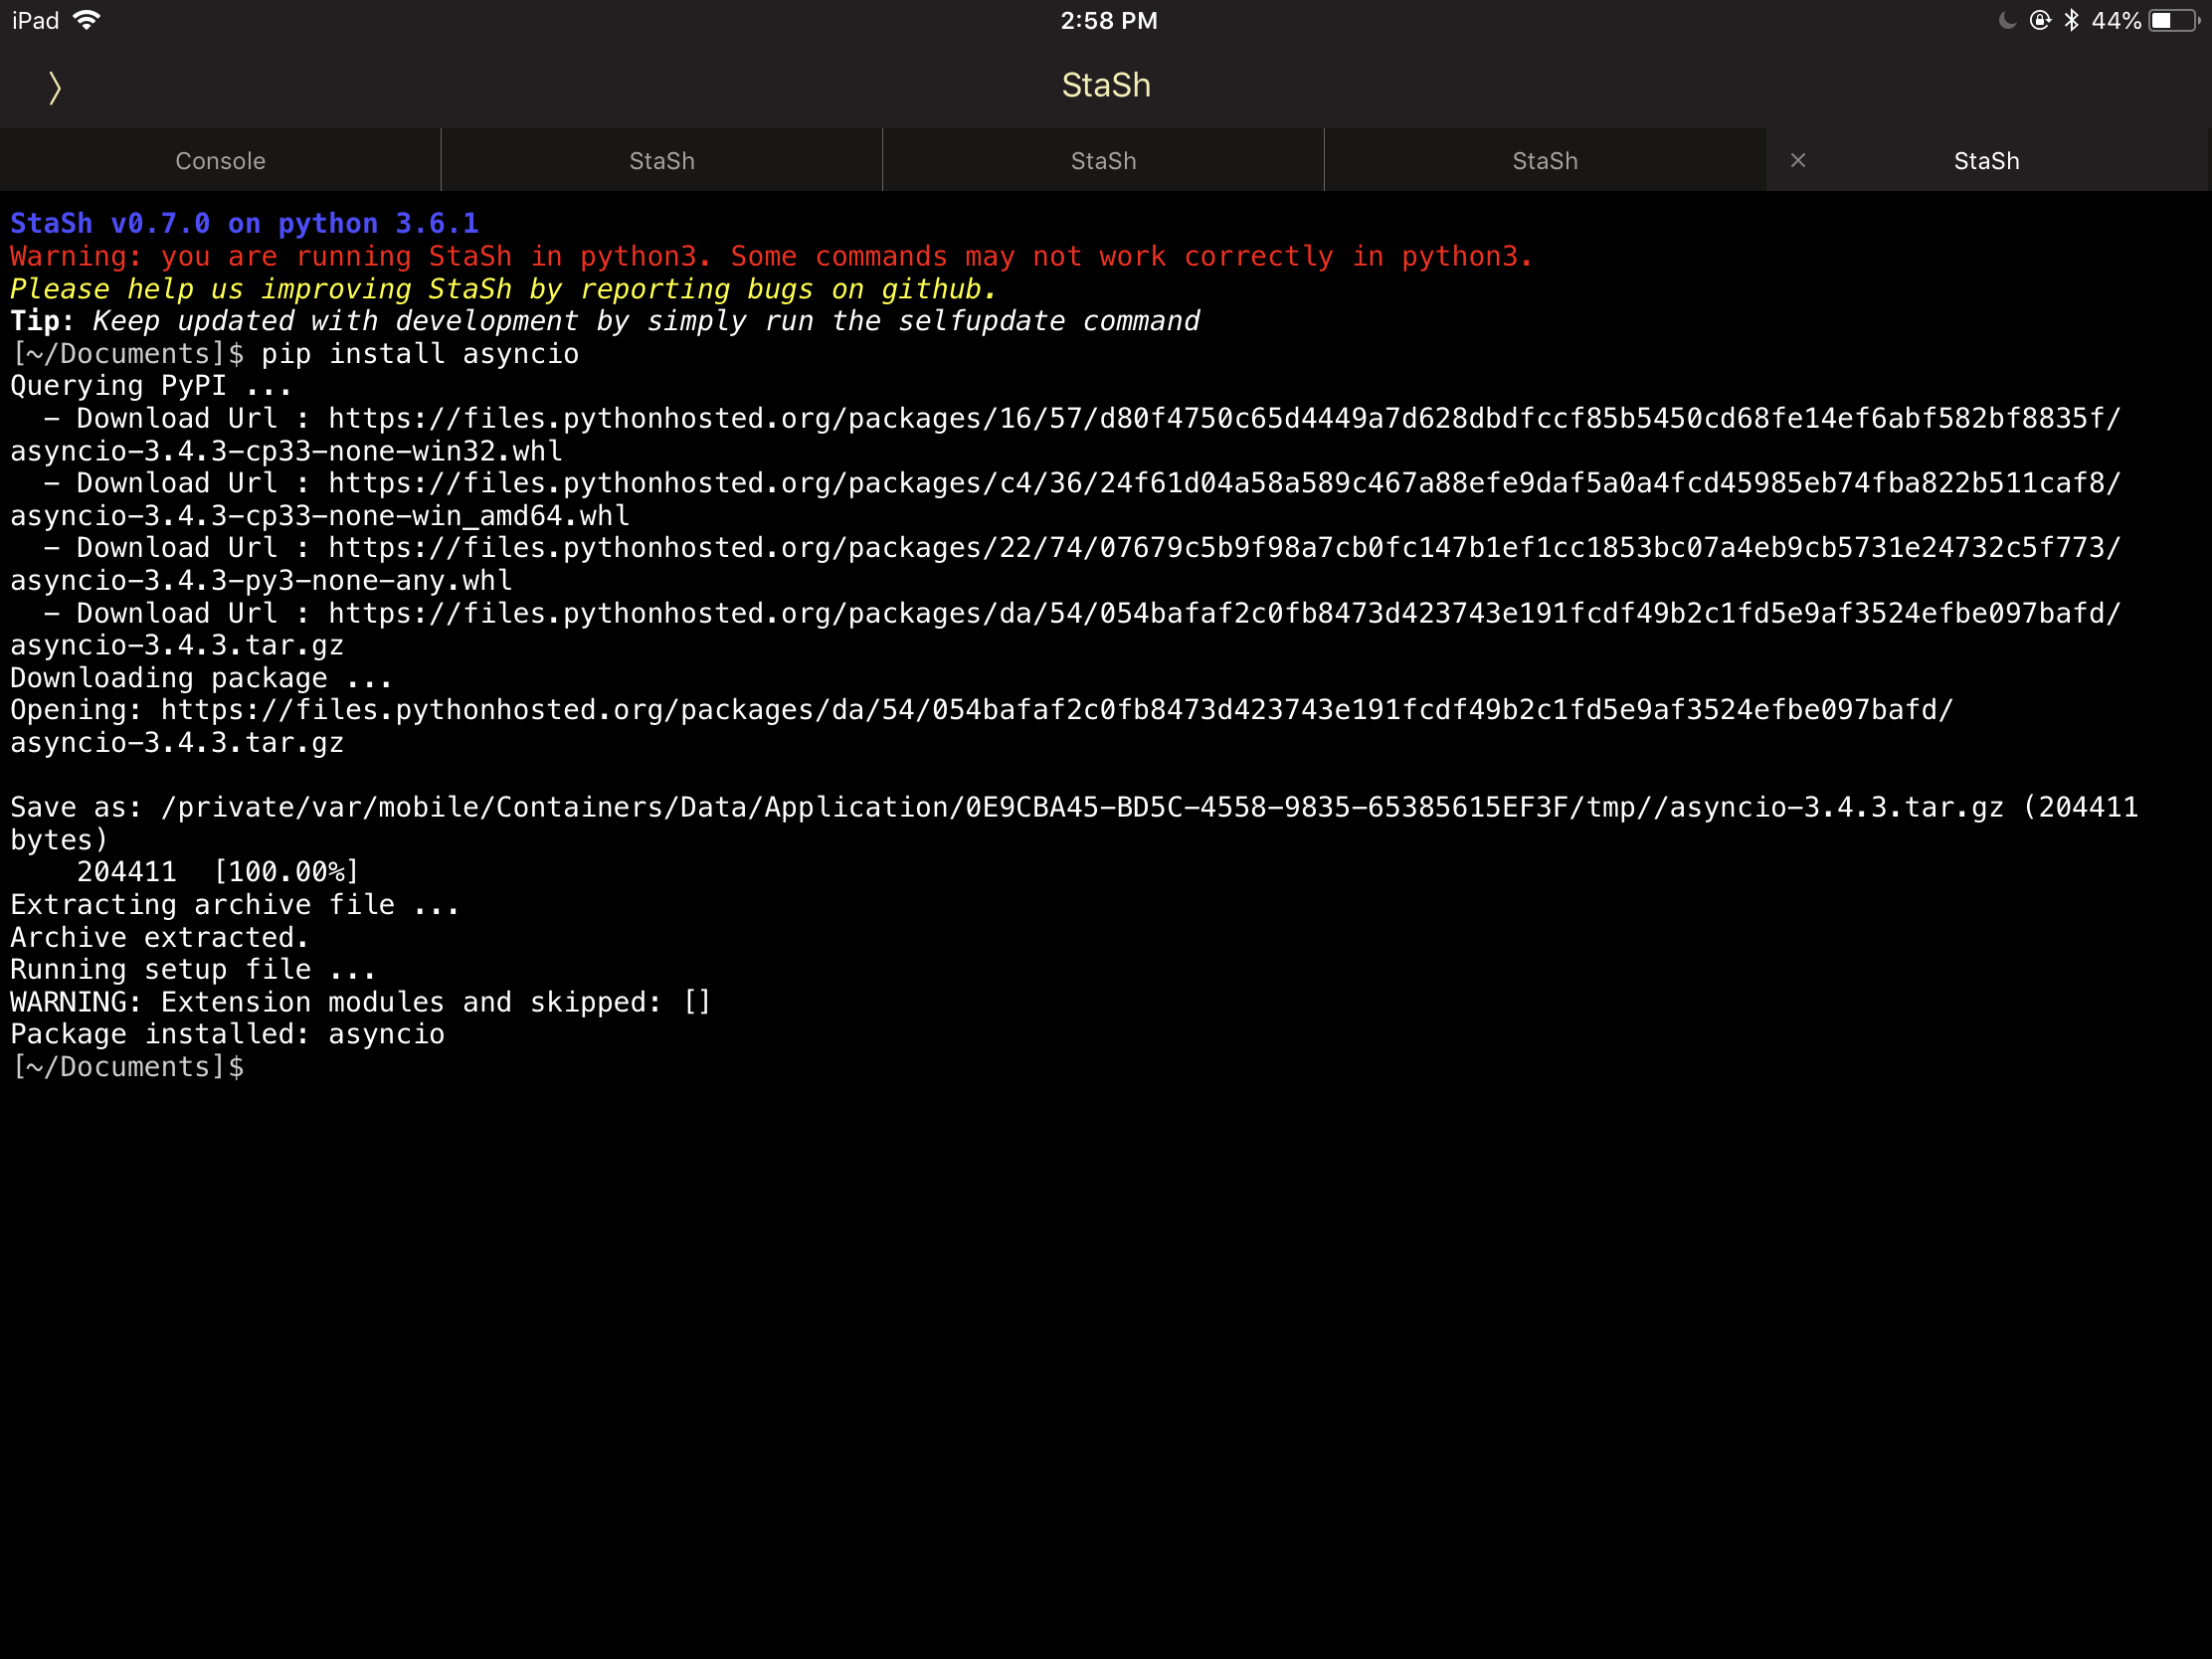 pip install python-ev3` with StaSh v0 7 0 doesn't seems to be